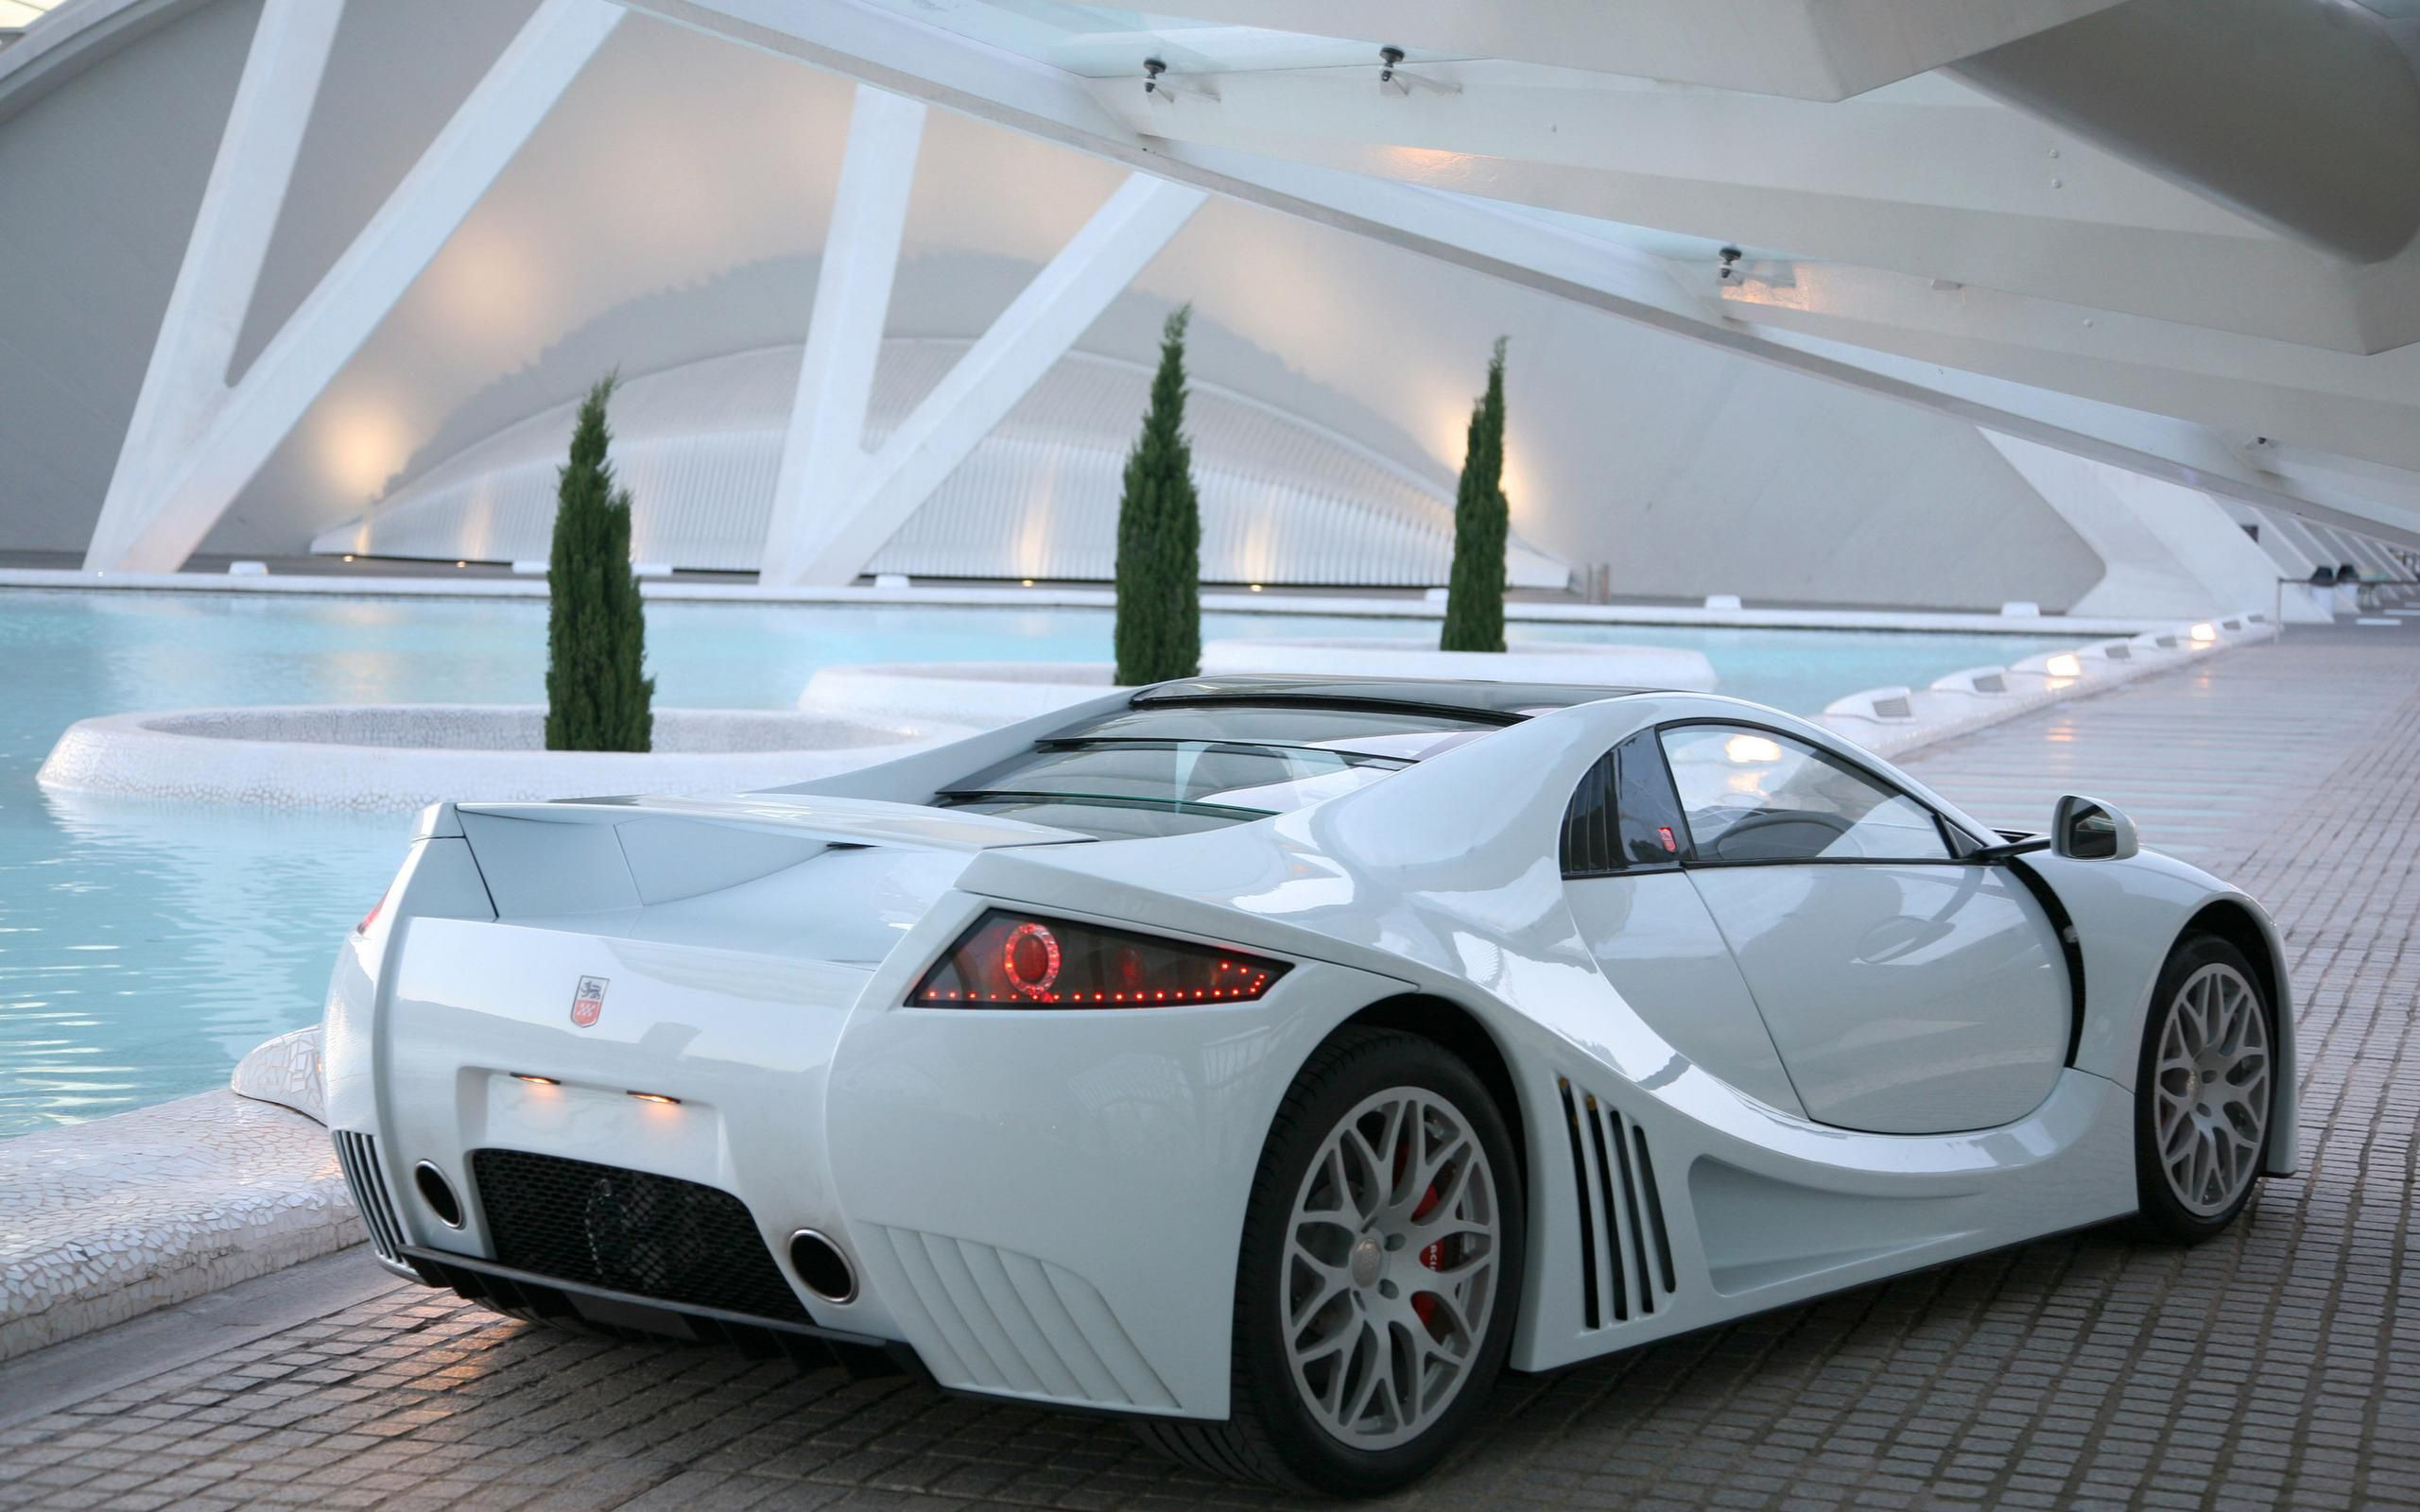 66 Best Free Exotic Mansions And Cars Wallpapers Wallpaperaccess